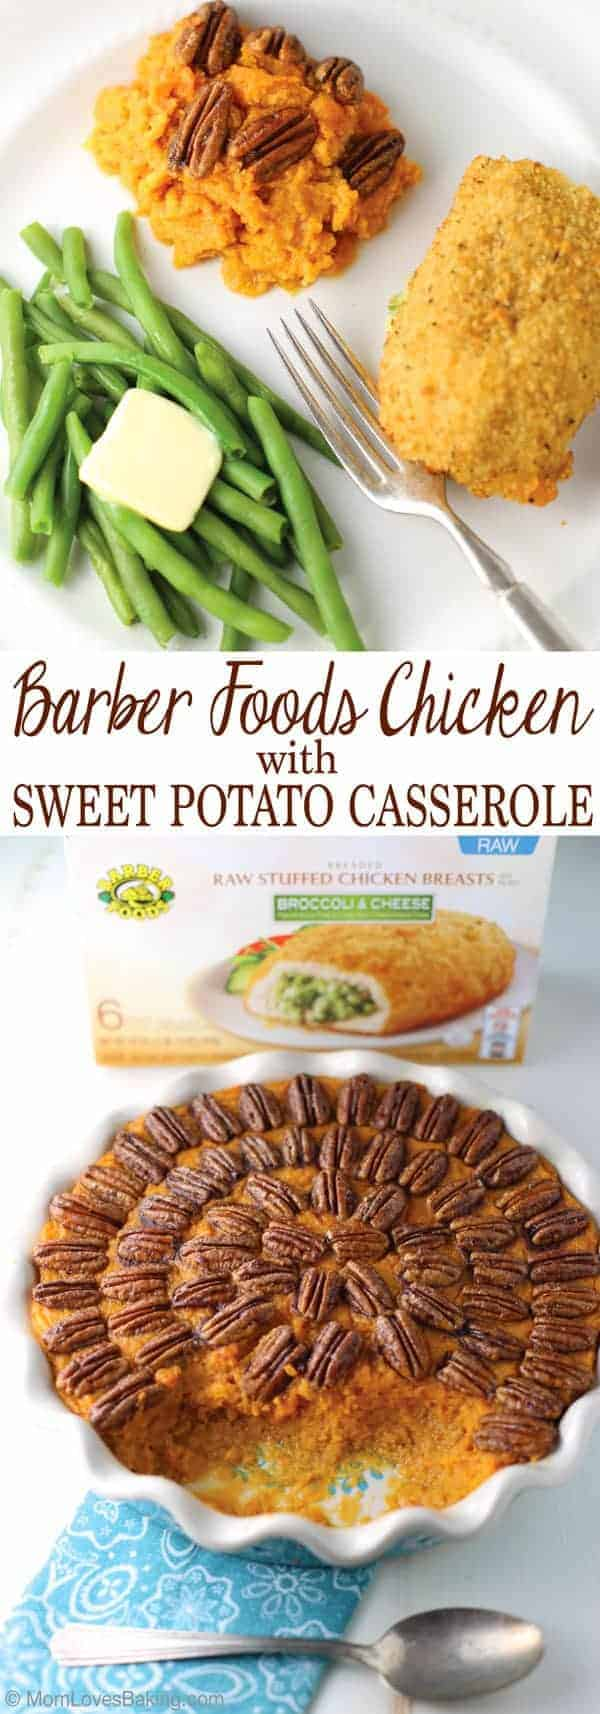 Barber Foods Chicken with Sweet Potato Casserole